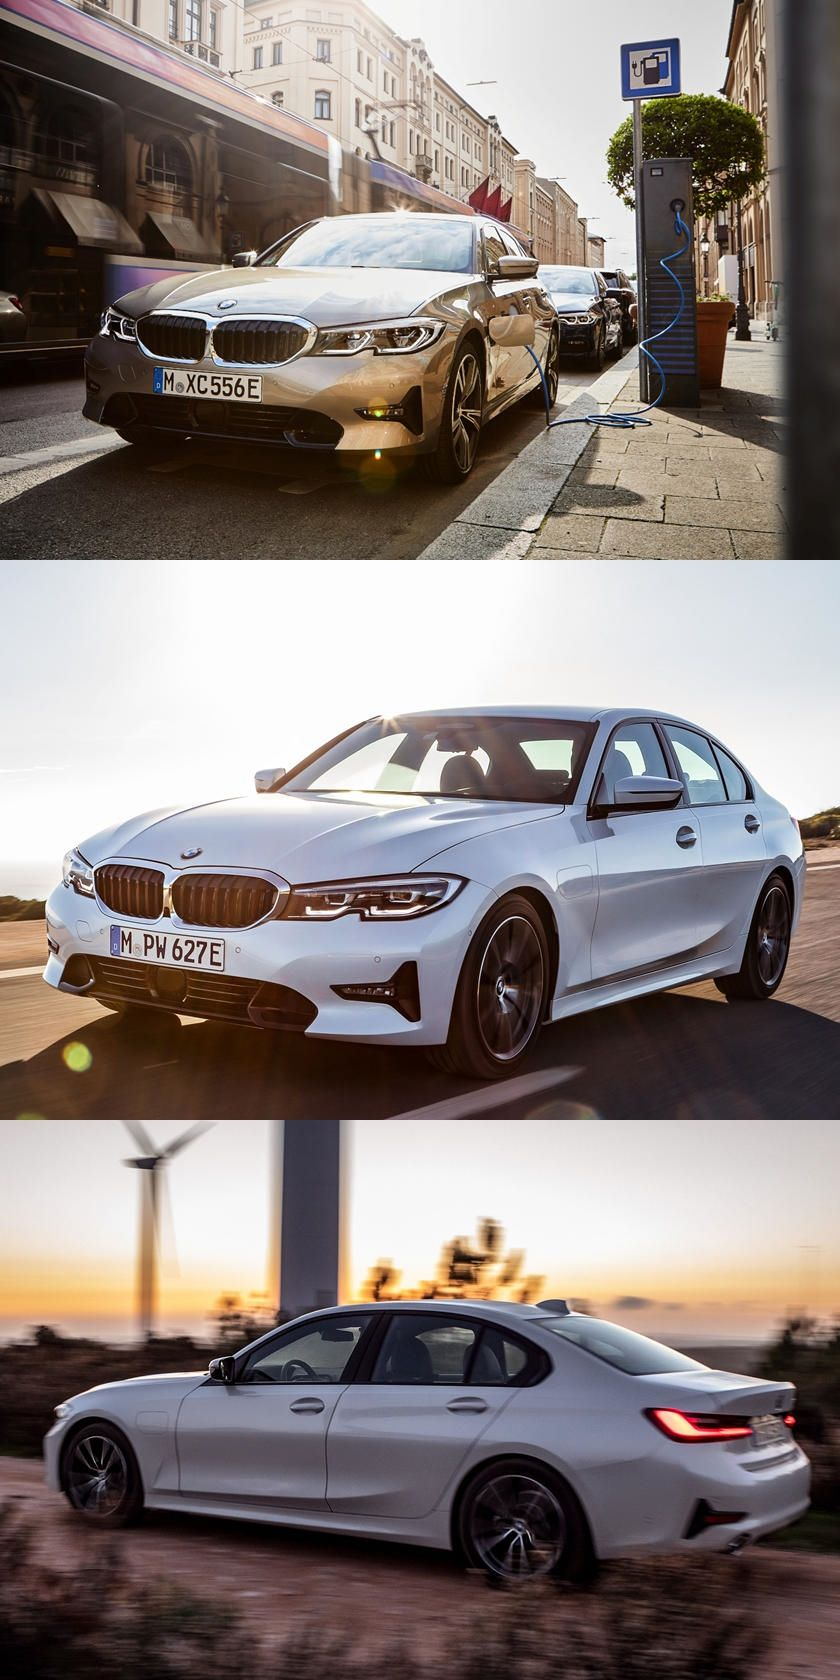 Bmw Wants To Be The Plug In Hybrid King Future Bmw Plug Ins Could Offer Hugely Improved Electric Range In 2020 Bmw Toyota Prius Prime Toyota Prius